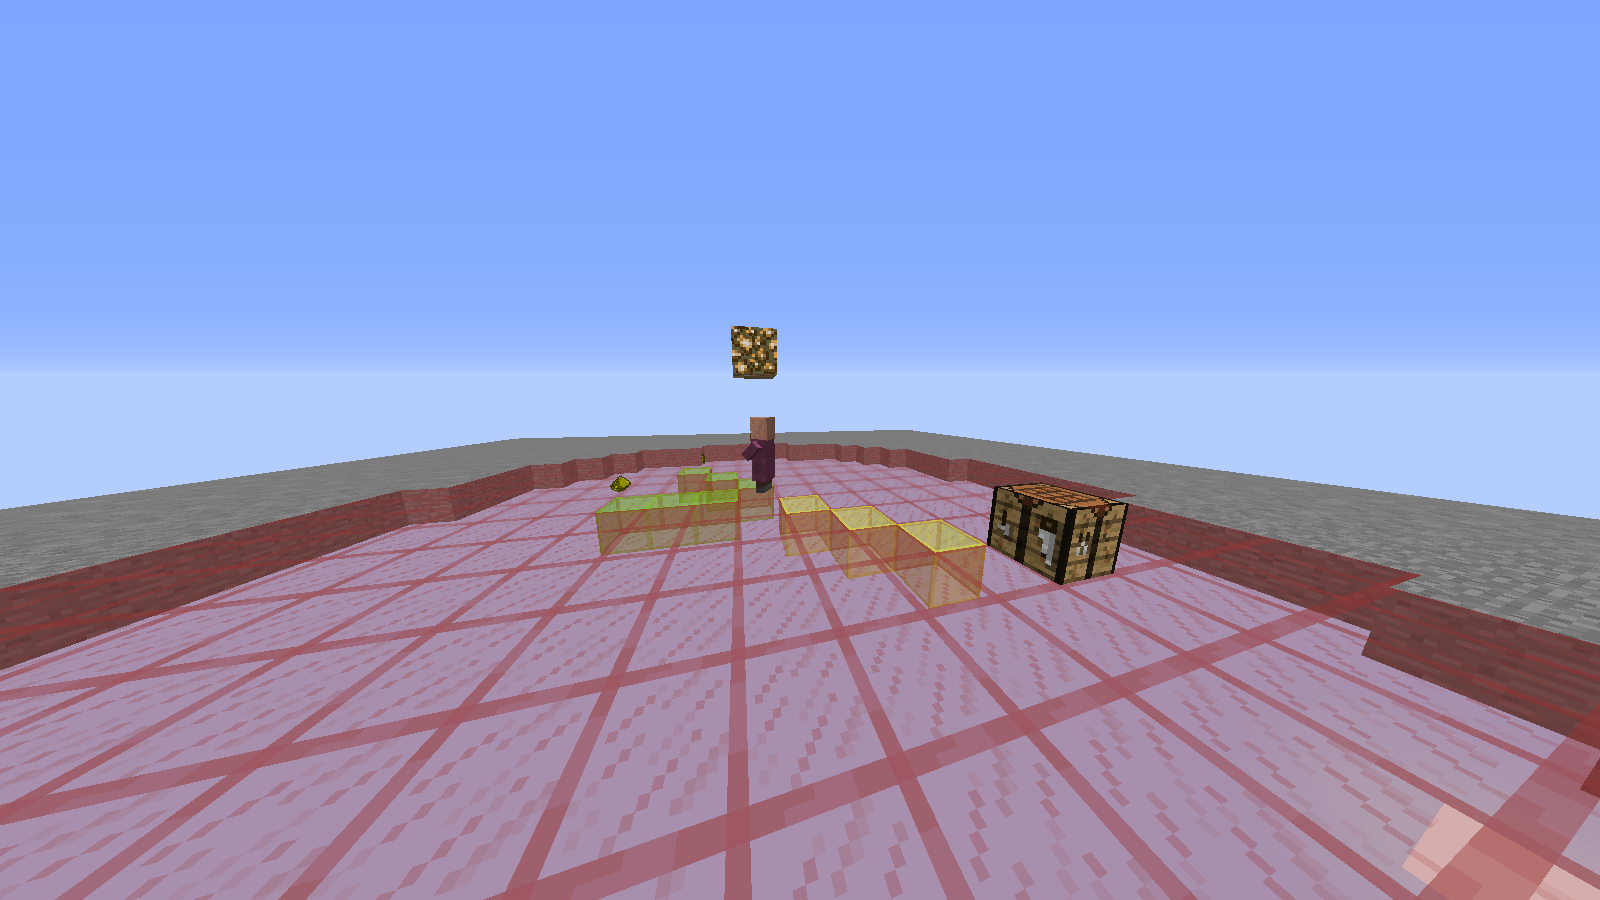 Villager radius detecting the crafting table and 4 glowstone dust